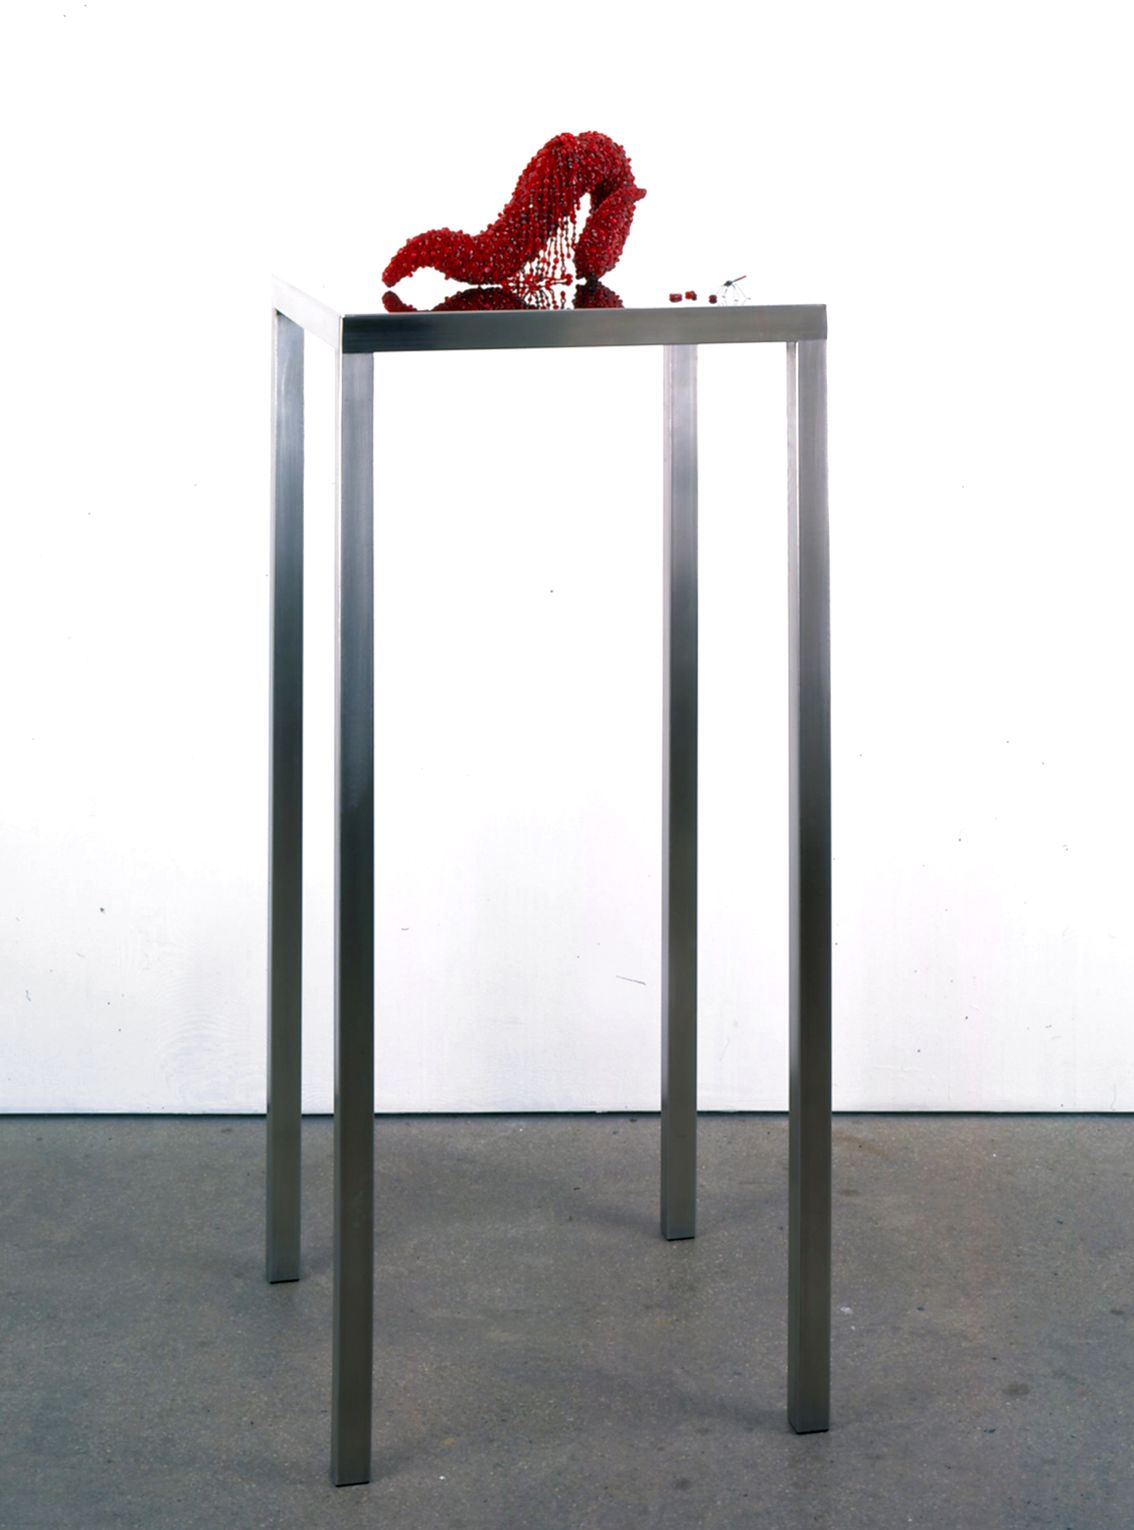 Black table with red sculpture by Angelo Filomeno